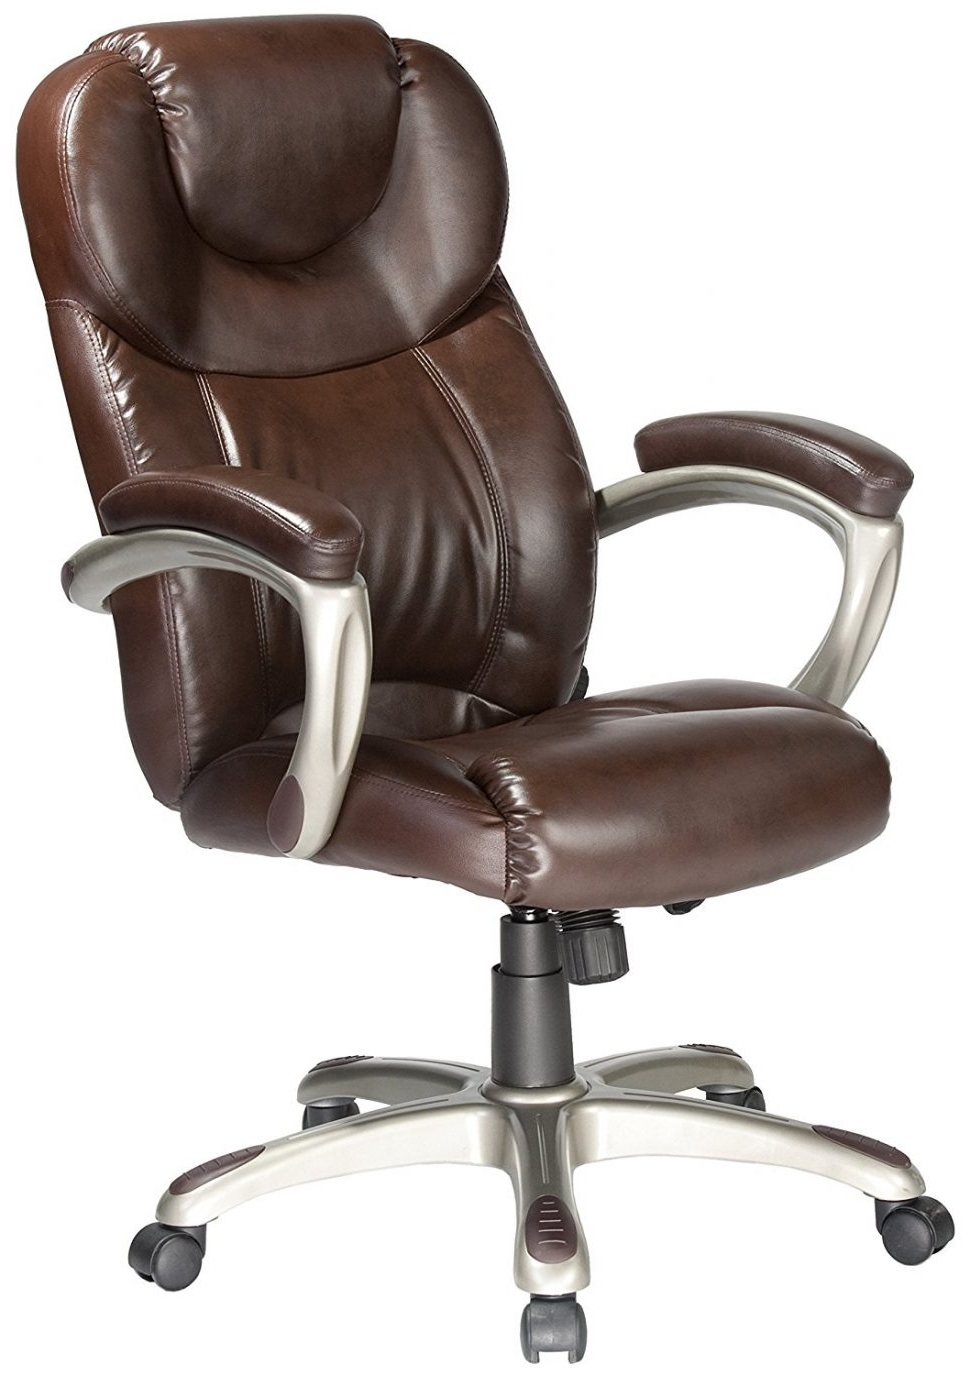 Oversized Executive Office Chairs Intended For Latest Chair : Brown Leather Office Chair Oversized Chair And A Half (View 14 of 20)